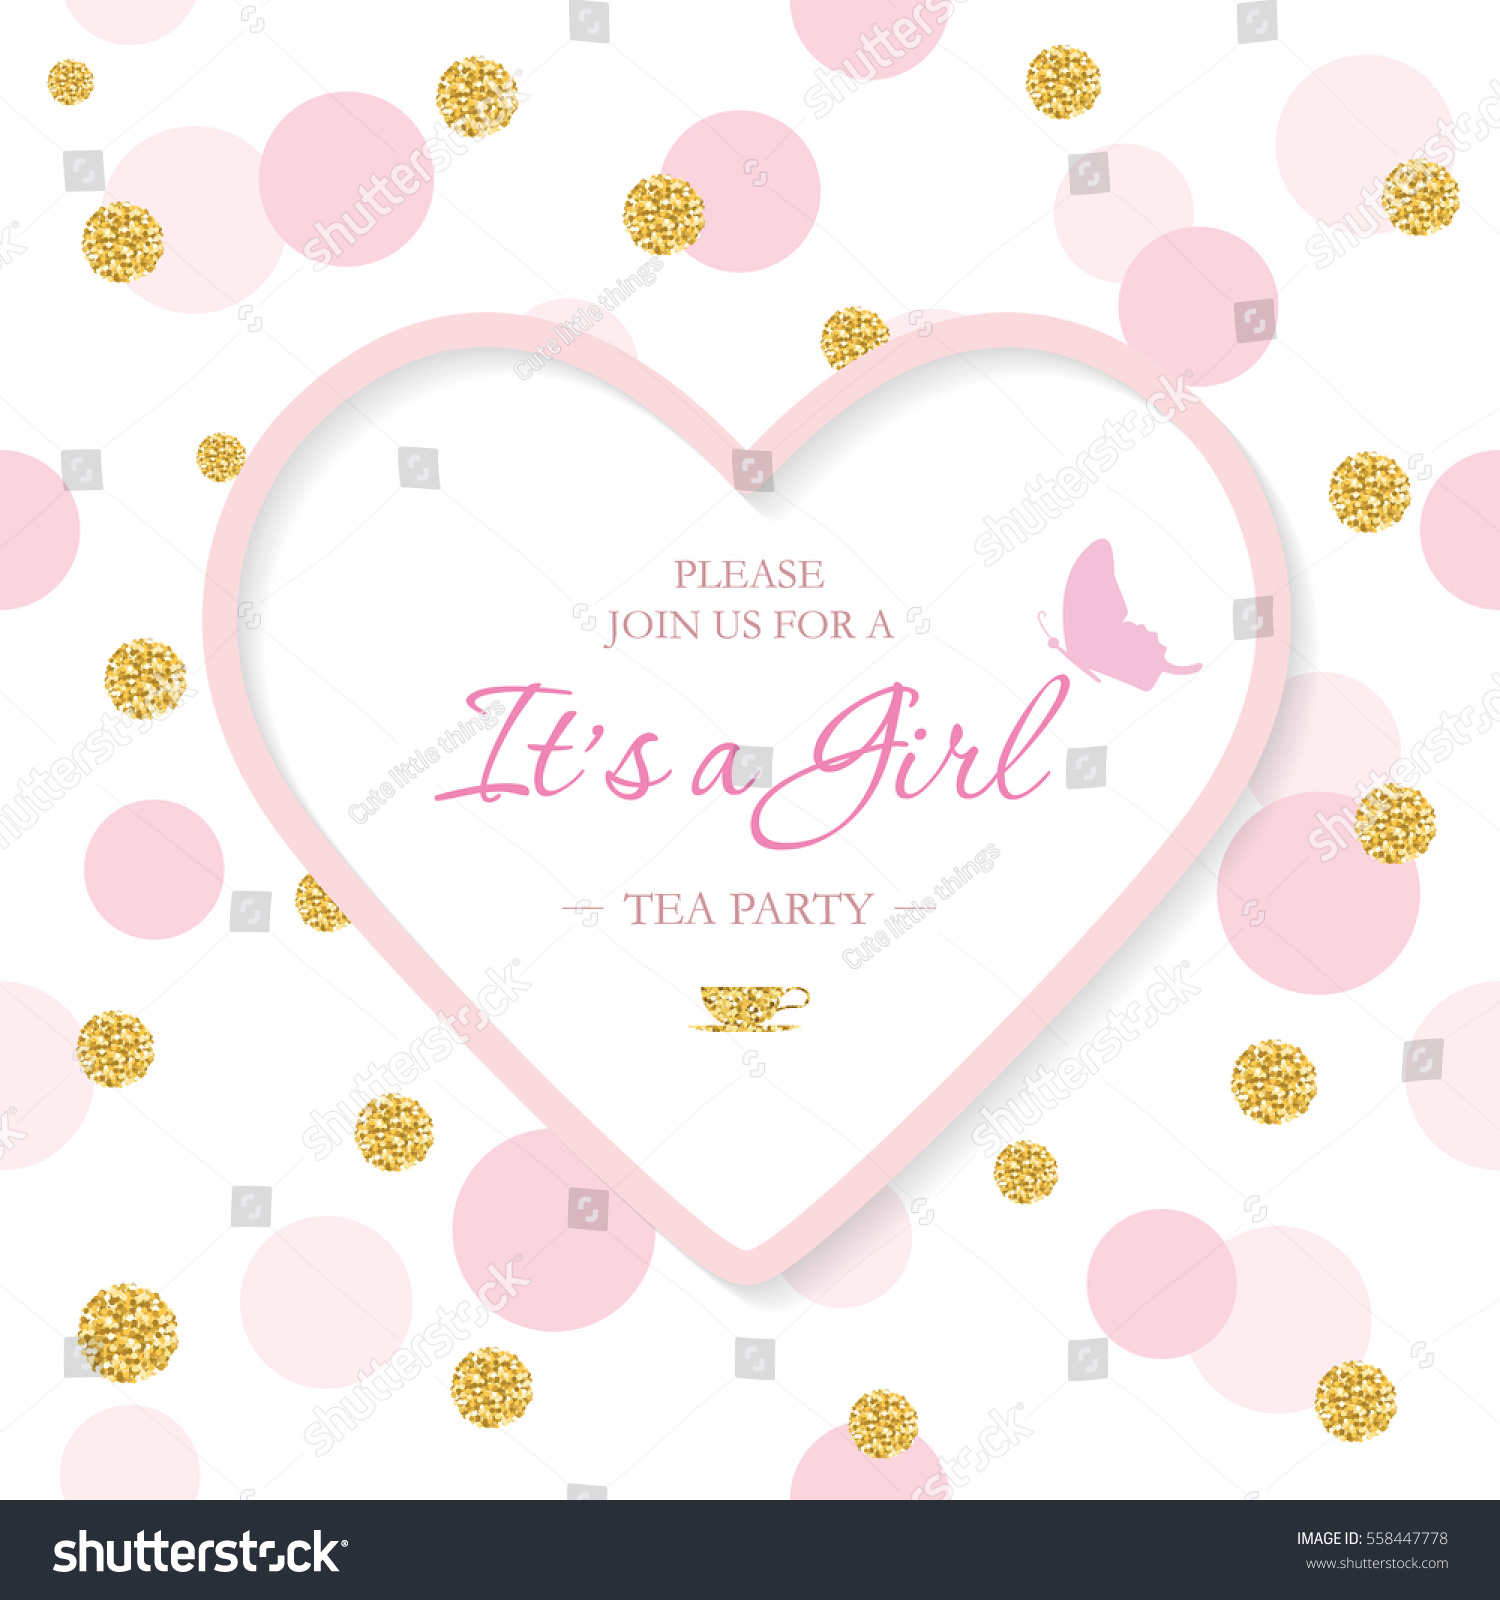 Girl baby shower invitation template included stock vector royalty girl baby shower invitation template included laser cutout heart shaped frame on seamless polka dot filmwisefo